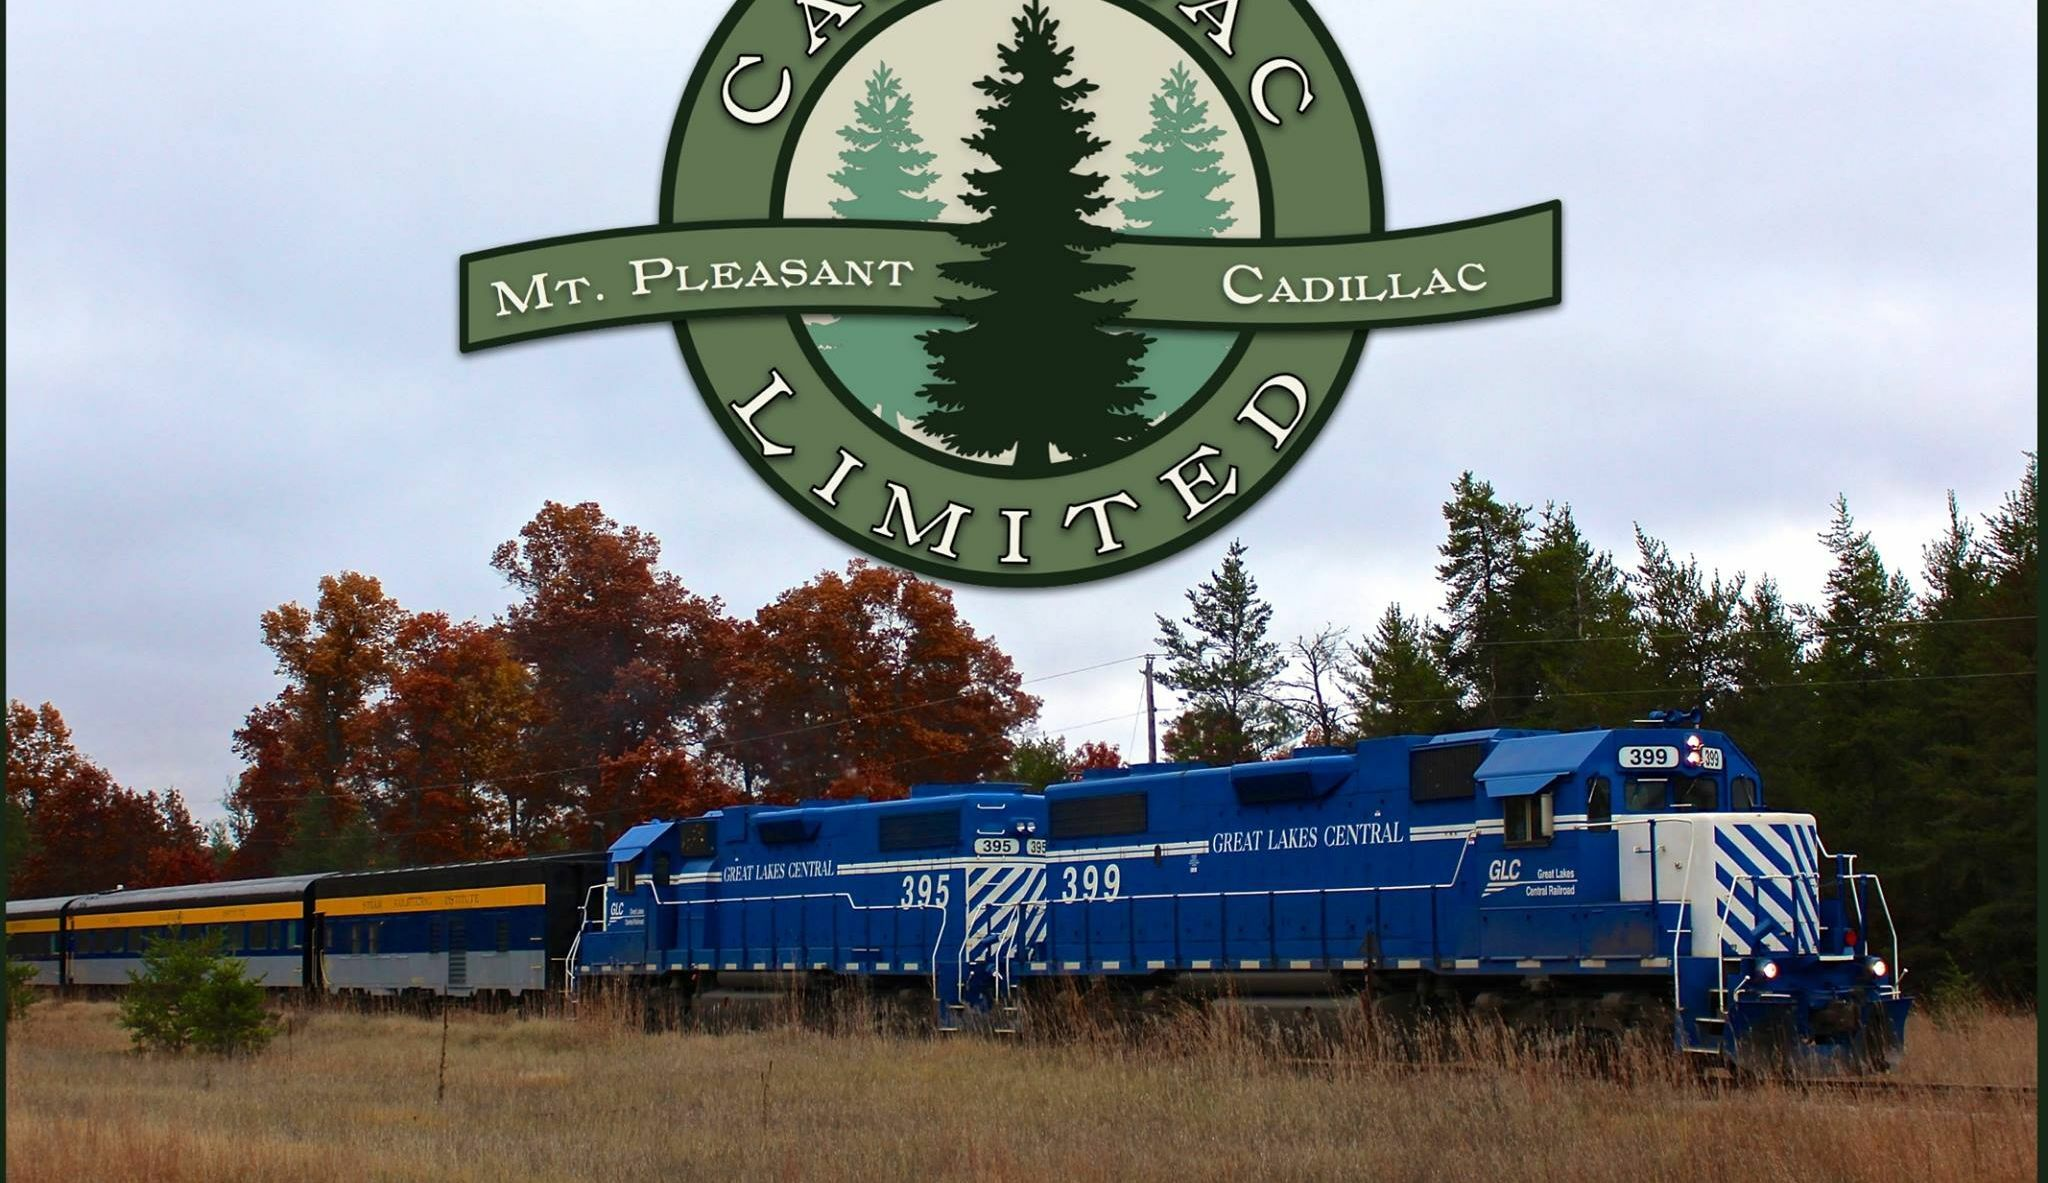 Cadillac Limited Fall Color Train Excursion